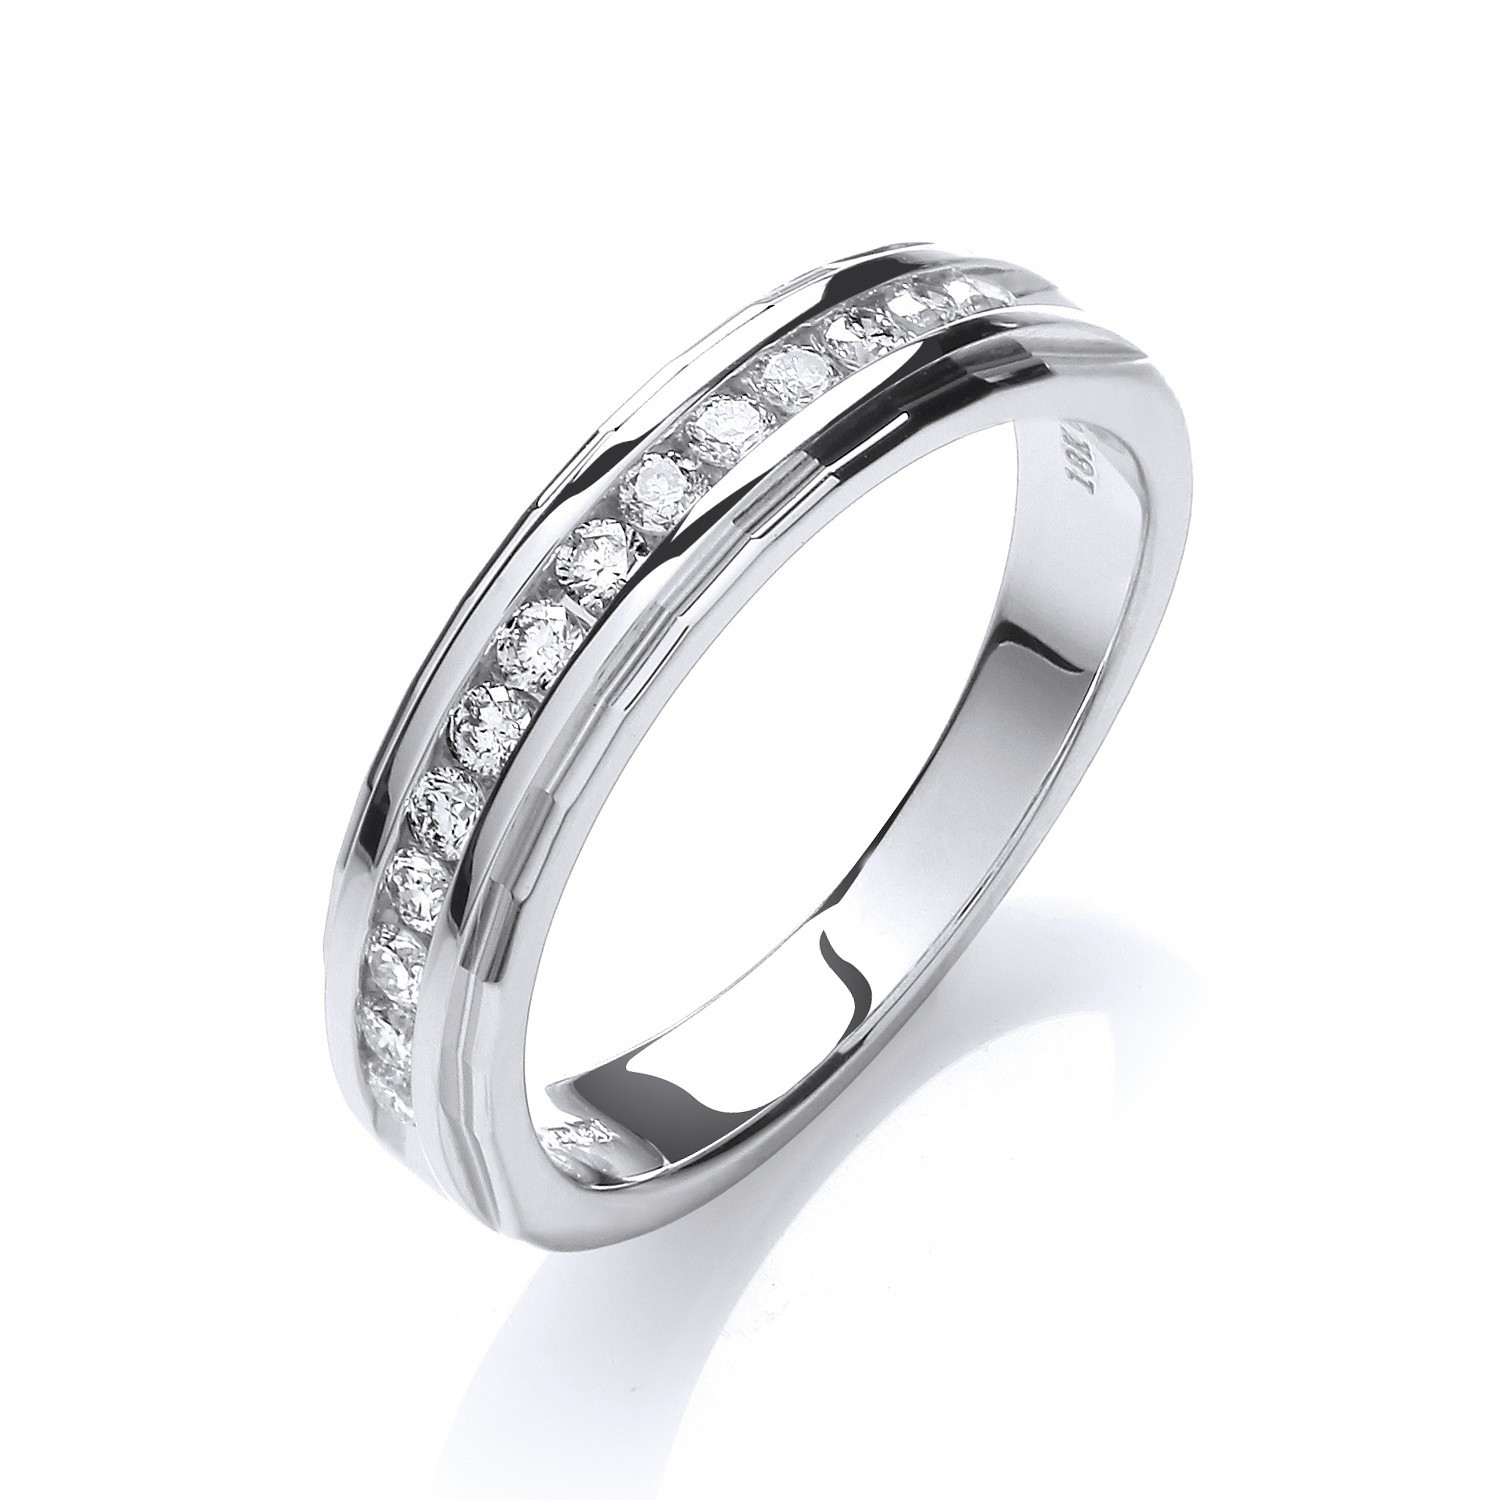 18ct White Gold 0.25ctwDiamond Eternity Ring